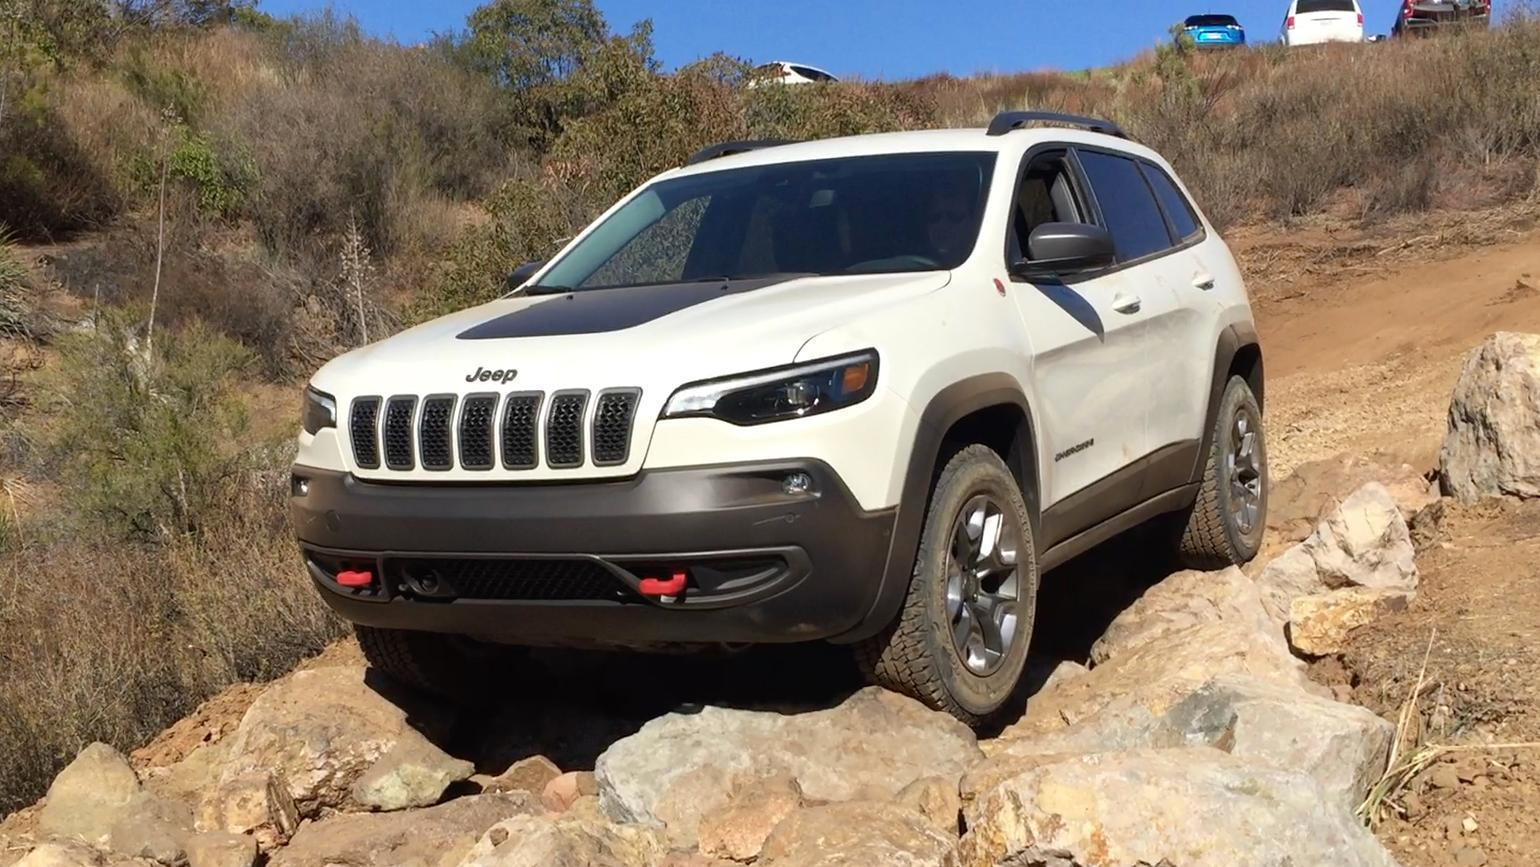 2019 jeep cherokee vs turbocharged compact suvs compare. Black Bedroom Furniture Sets. Home Design Ideas